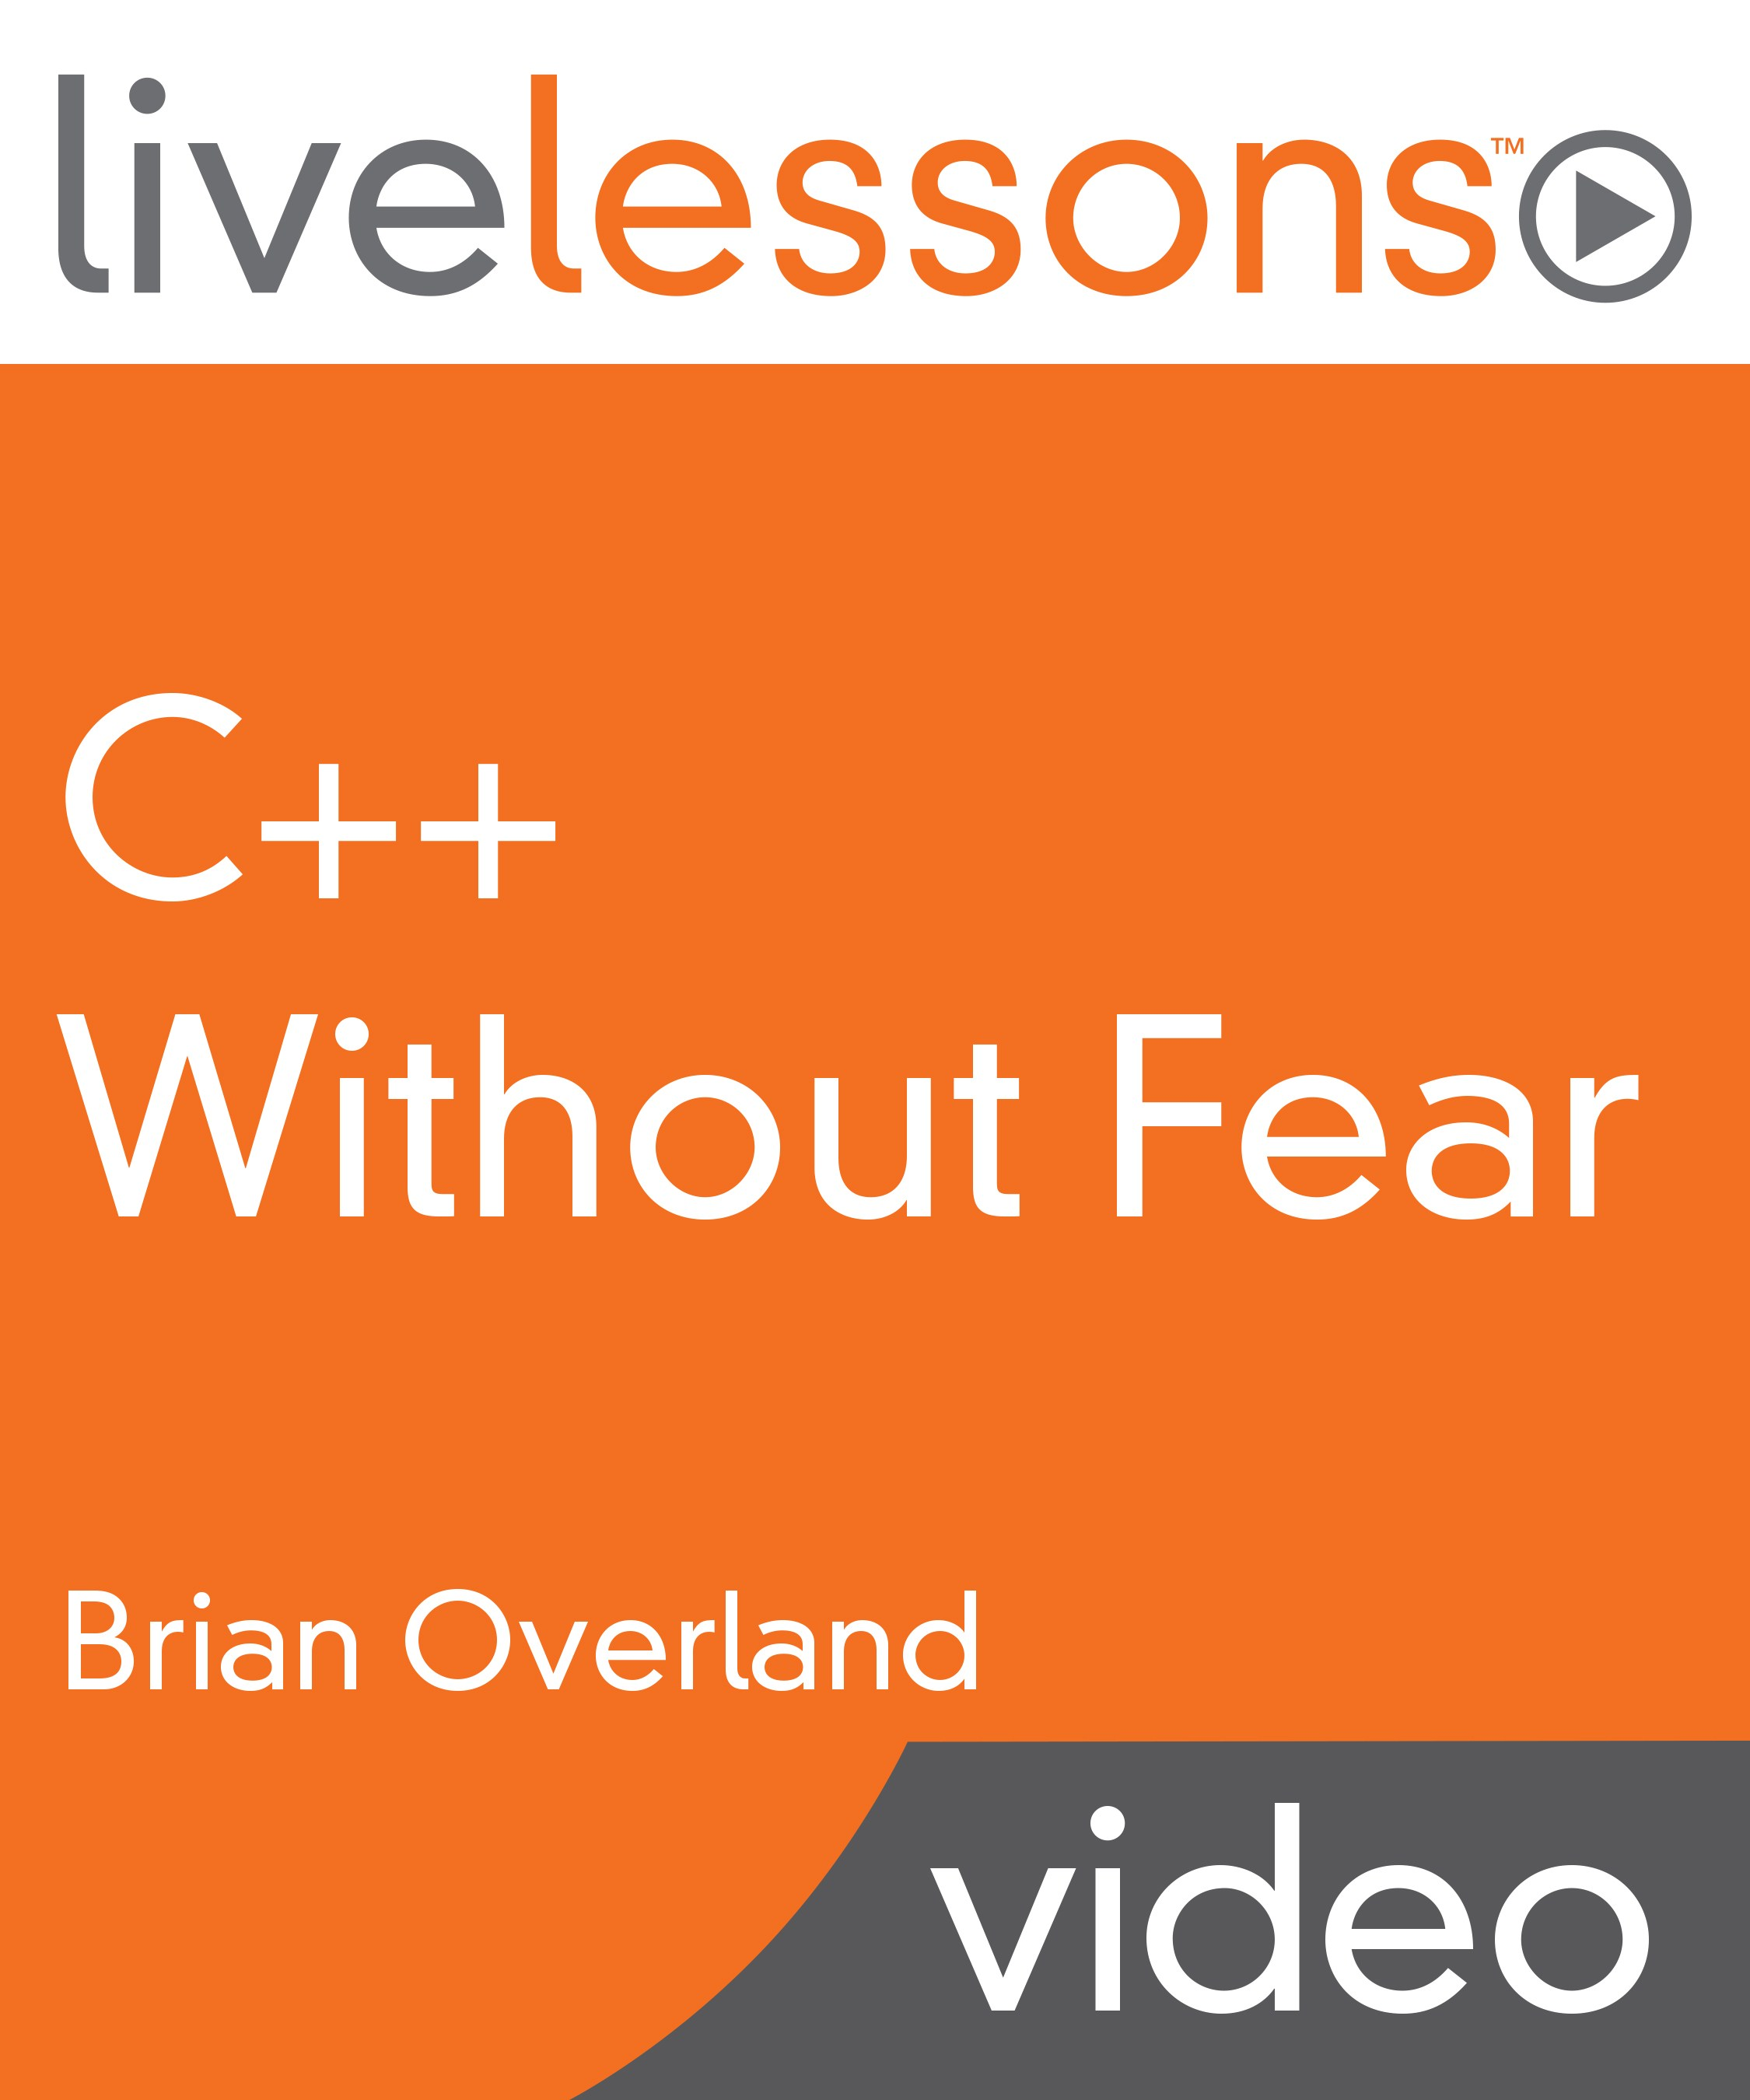 C++ Without Fear LiveLessons (Video Training): A Beginner's Tutorial That Makes You Feel Smart